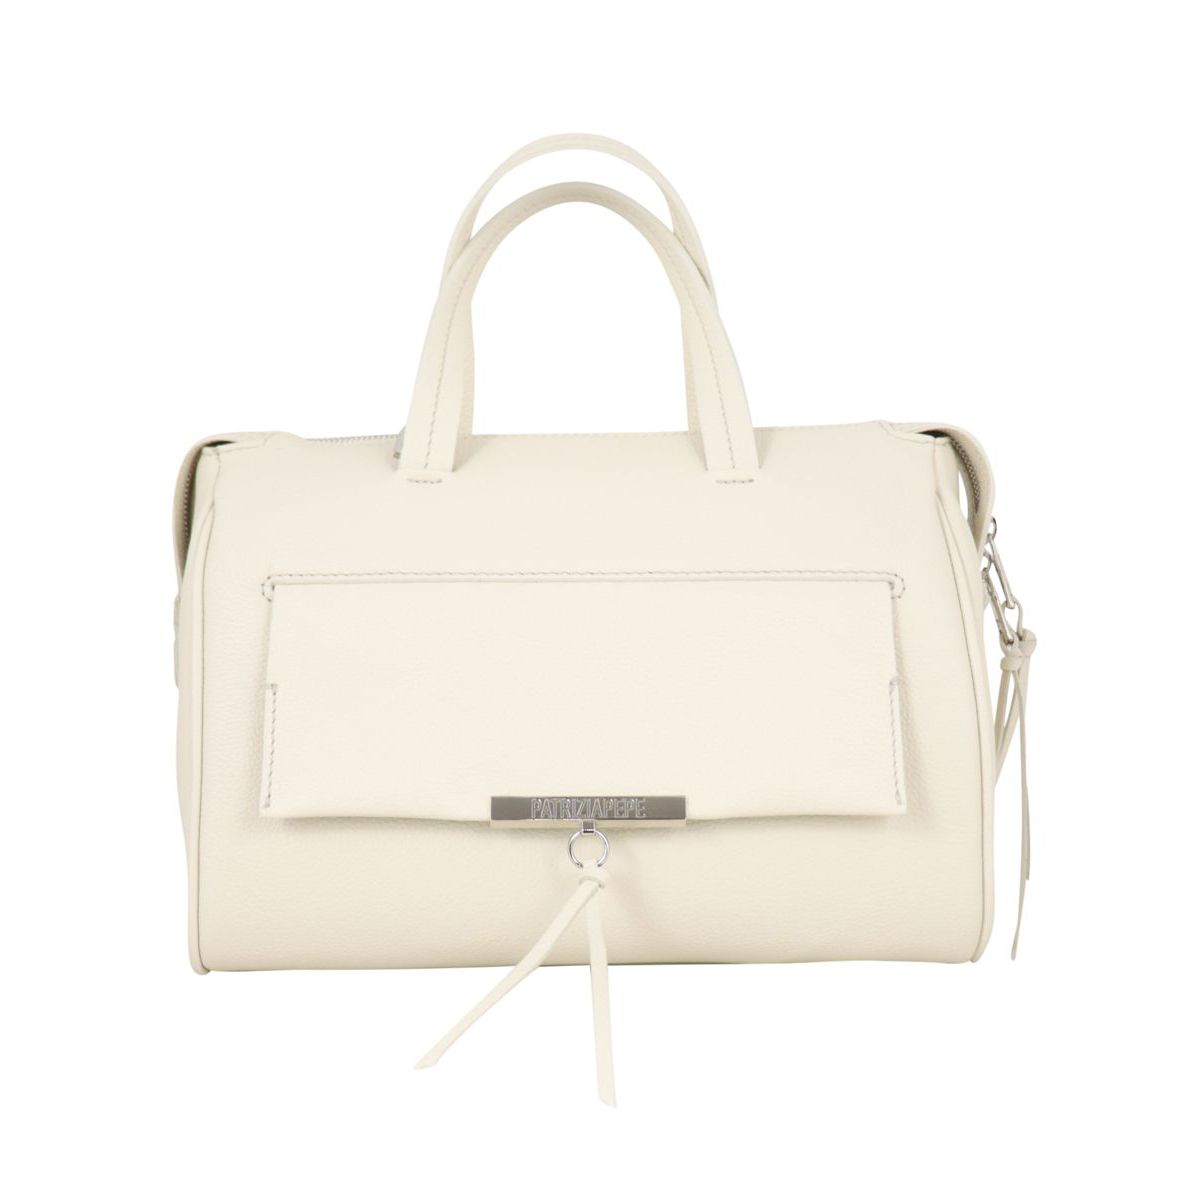 Top case in textured leather with logo and front pocket Ivory Patrizia Pepe